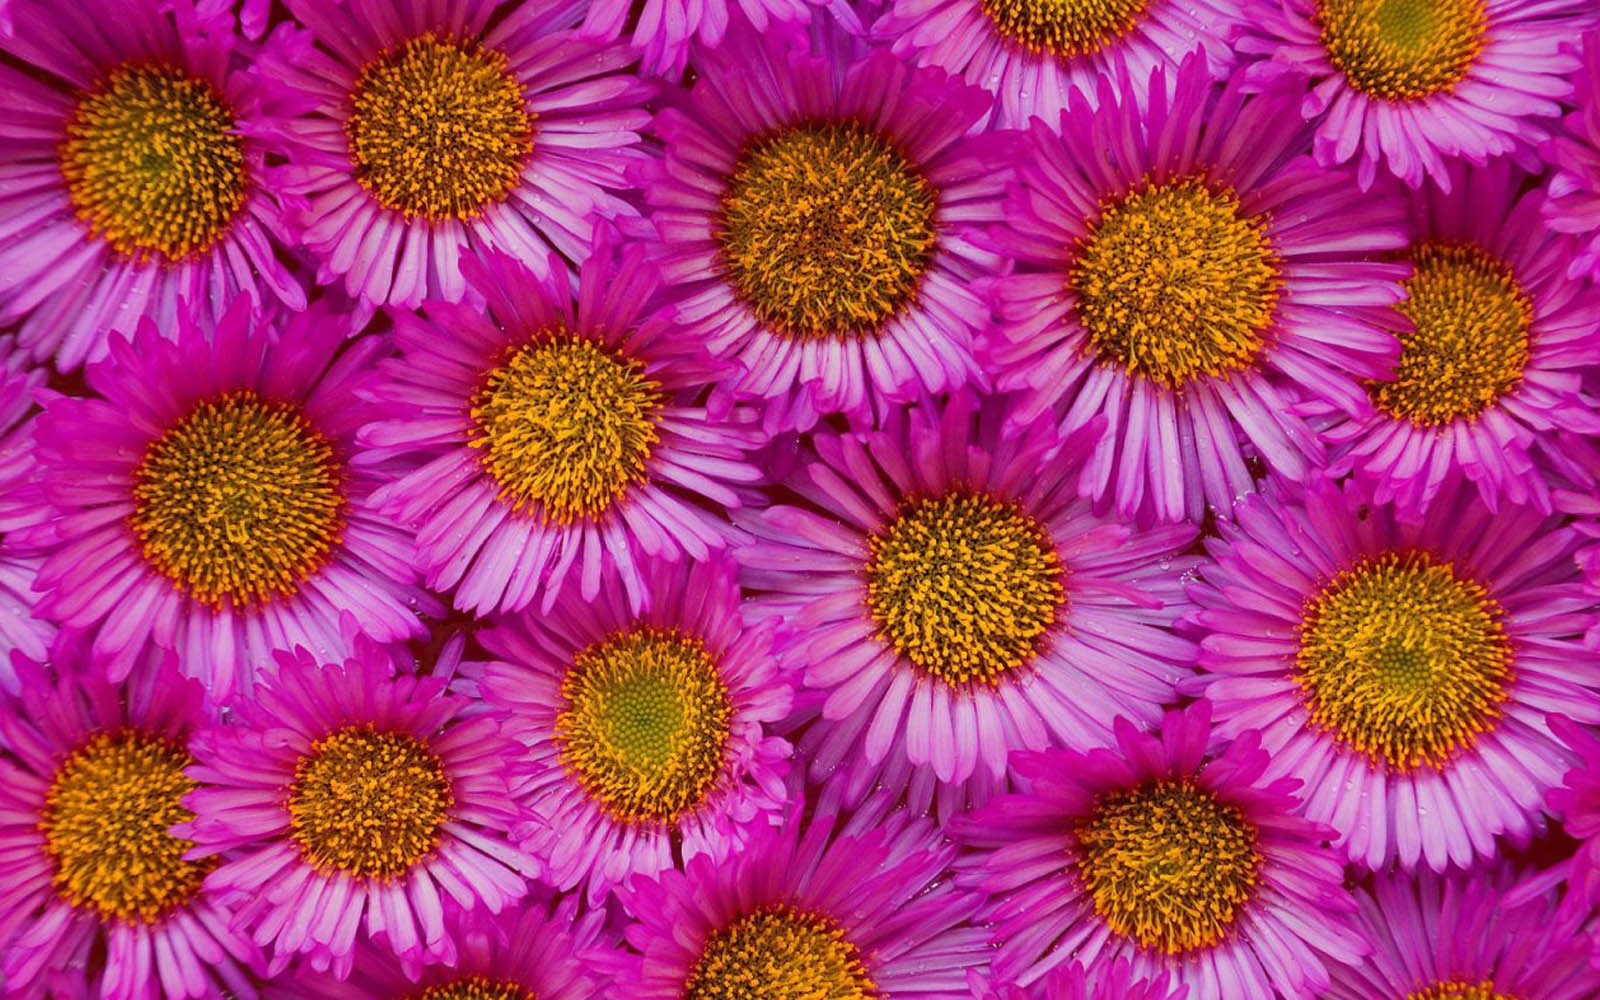 XS Wallpapers HD: Aster Flowers Wallpapers